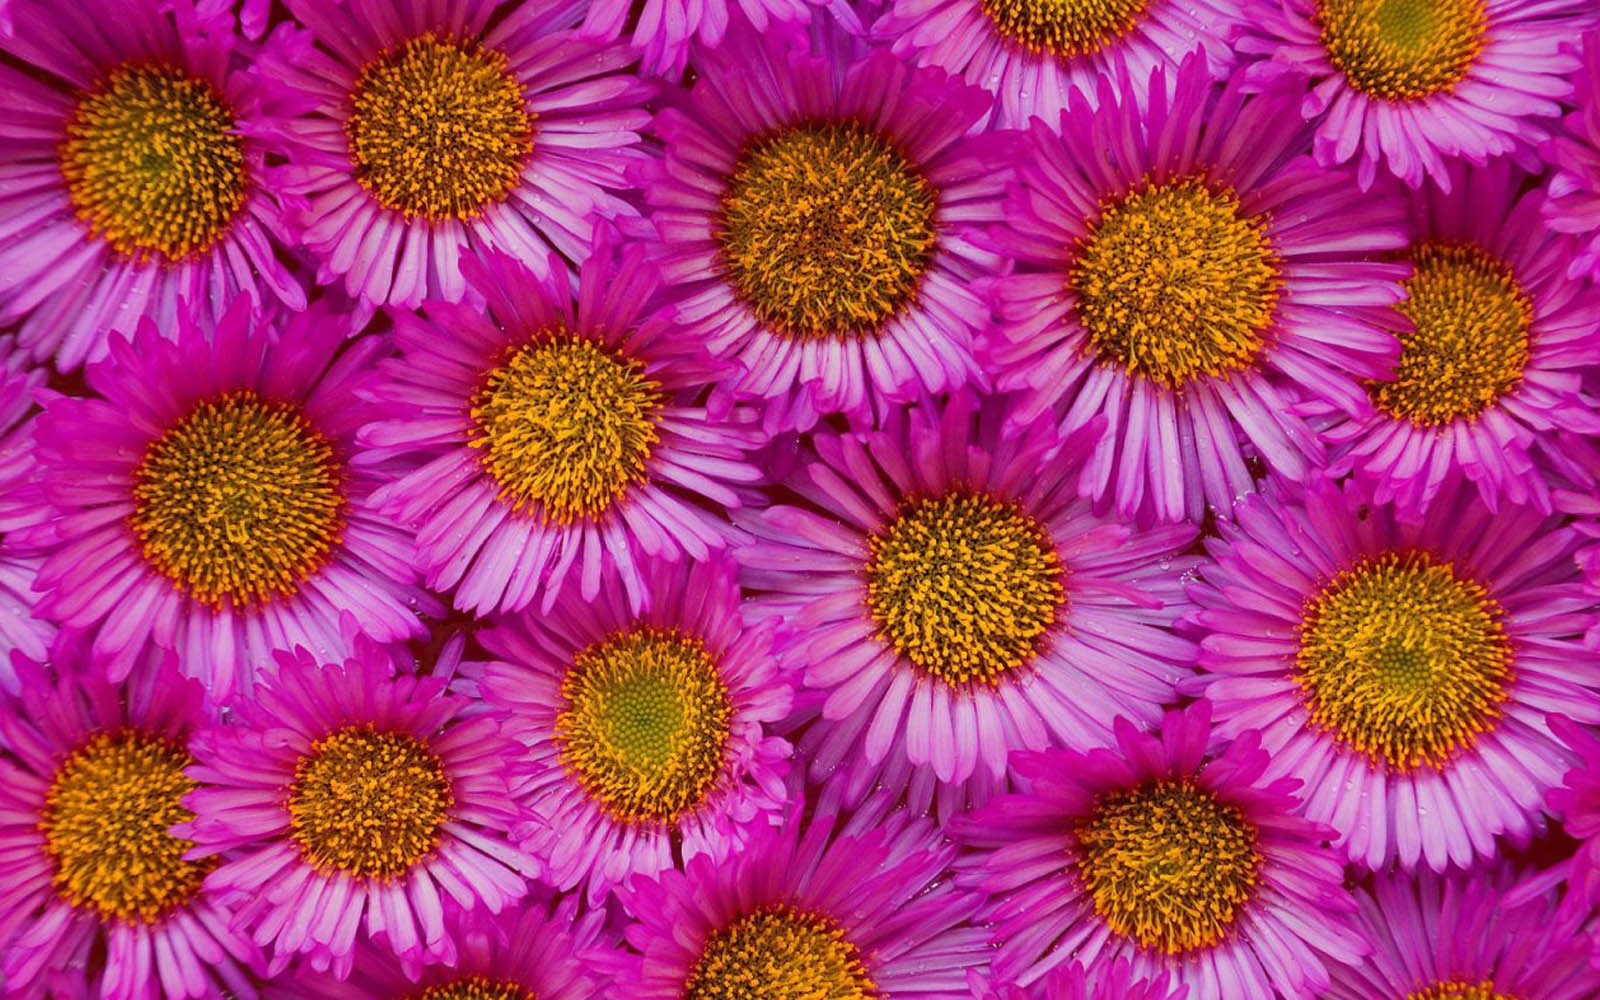 XS Wallpapers HD: Aster Flowers Wallpapers